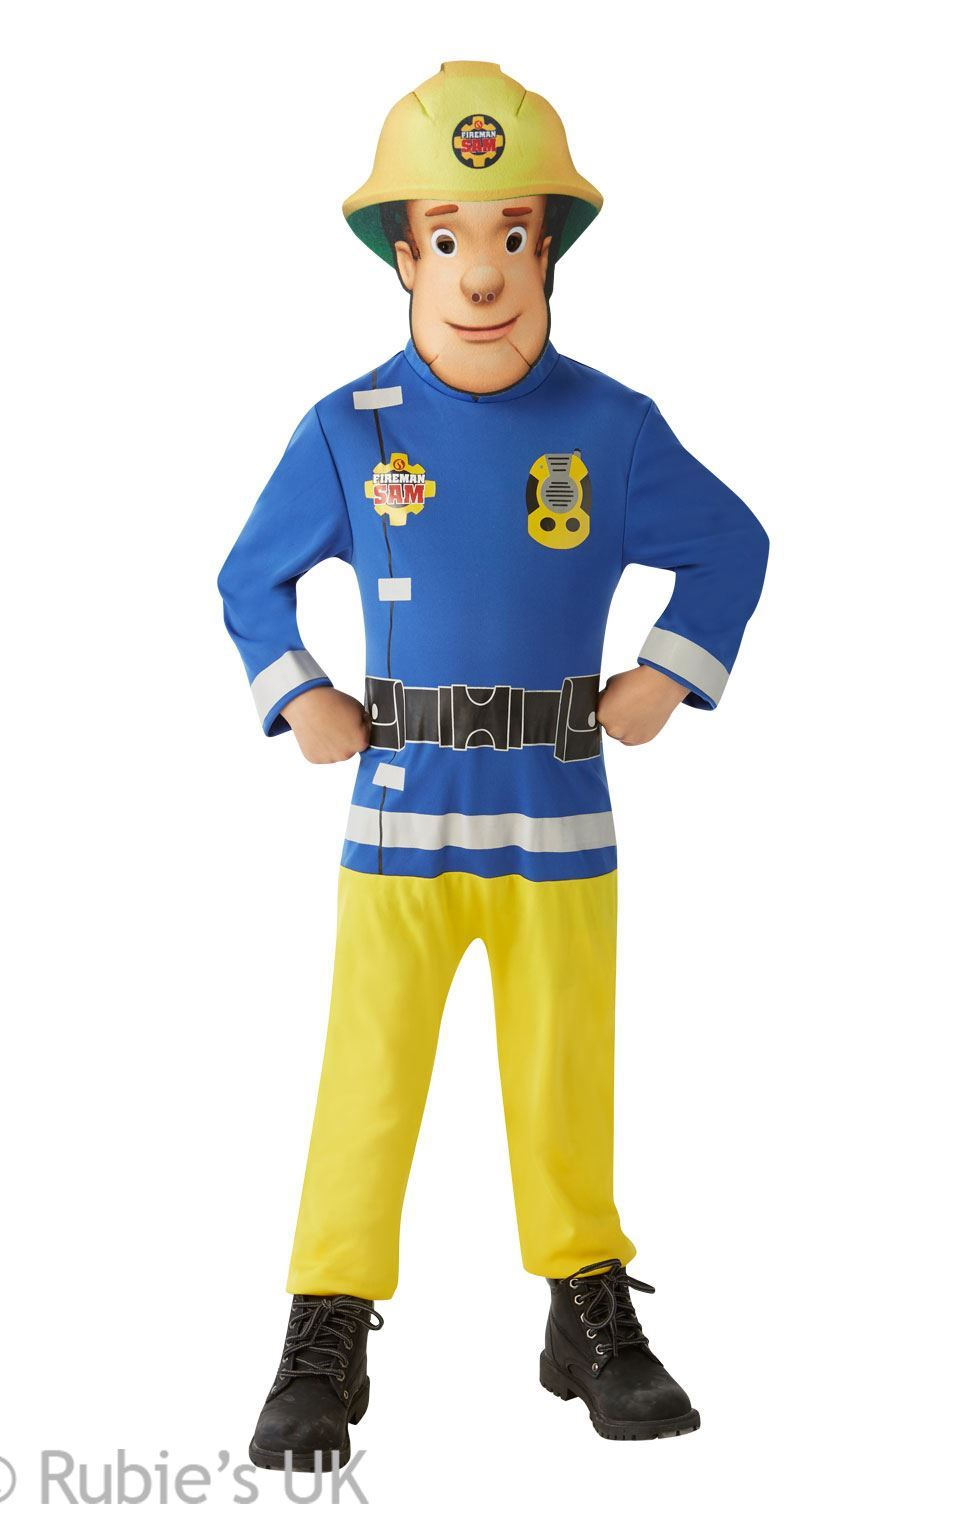 FIRE FIGHTER FIREMAN SAM DRESSING UP COSTUME FANCY DRESS BOYS TODDLERS AGE 3-12